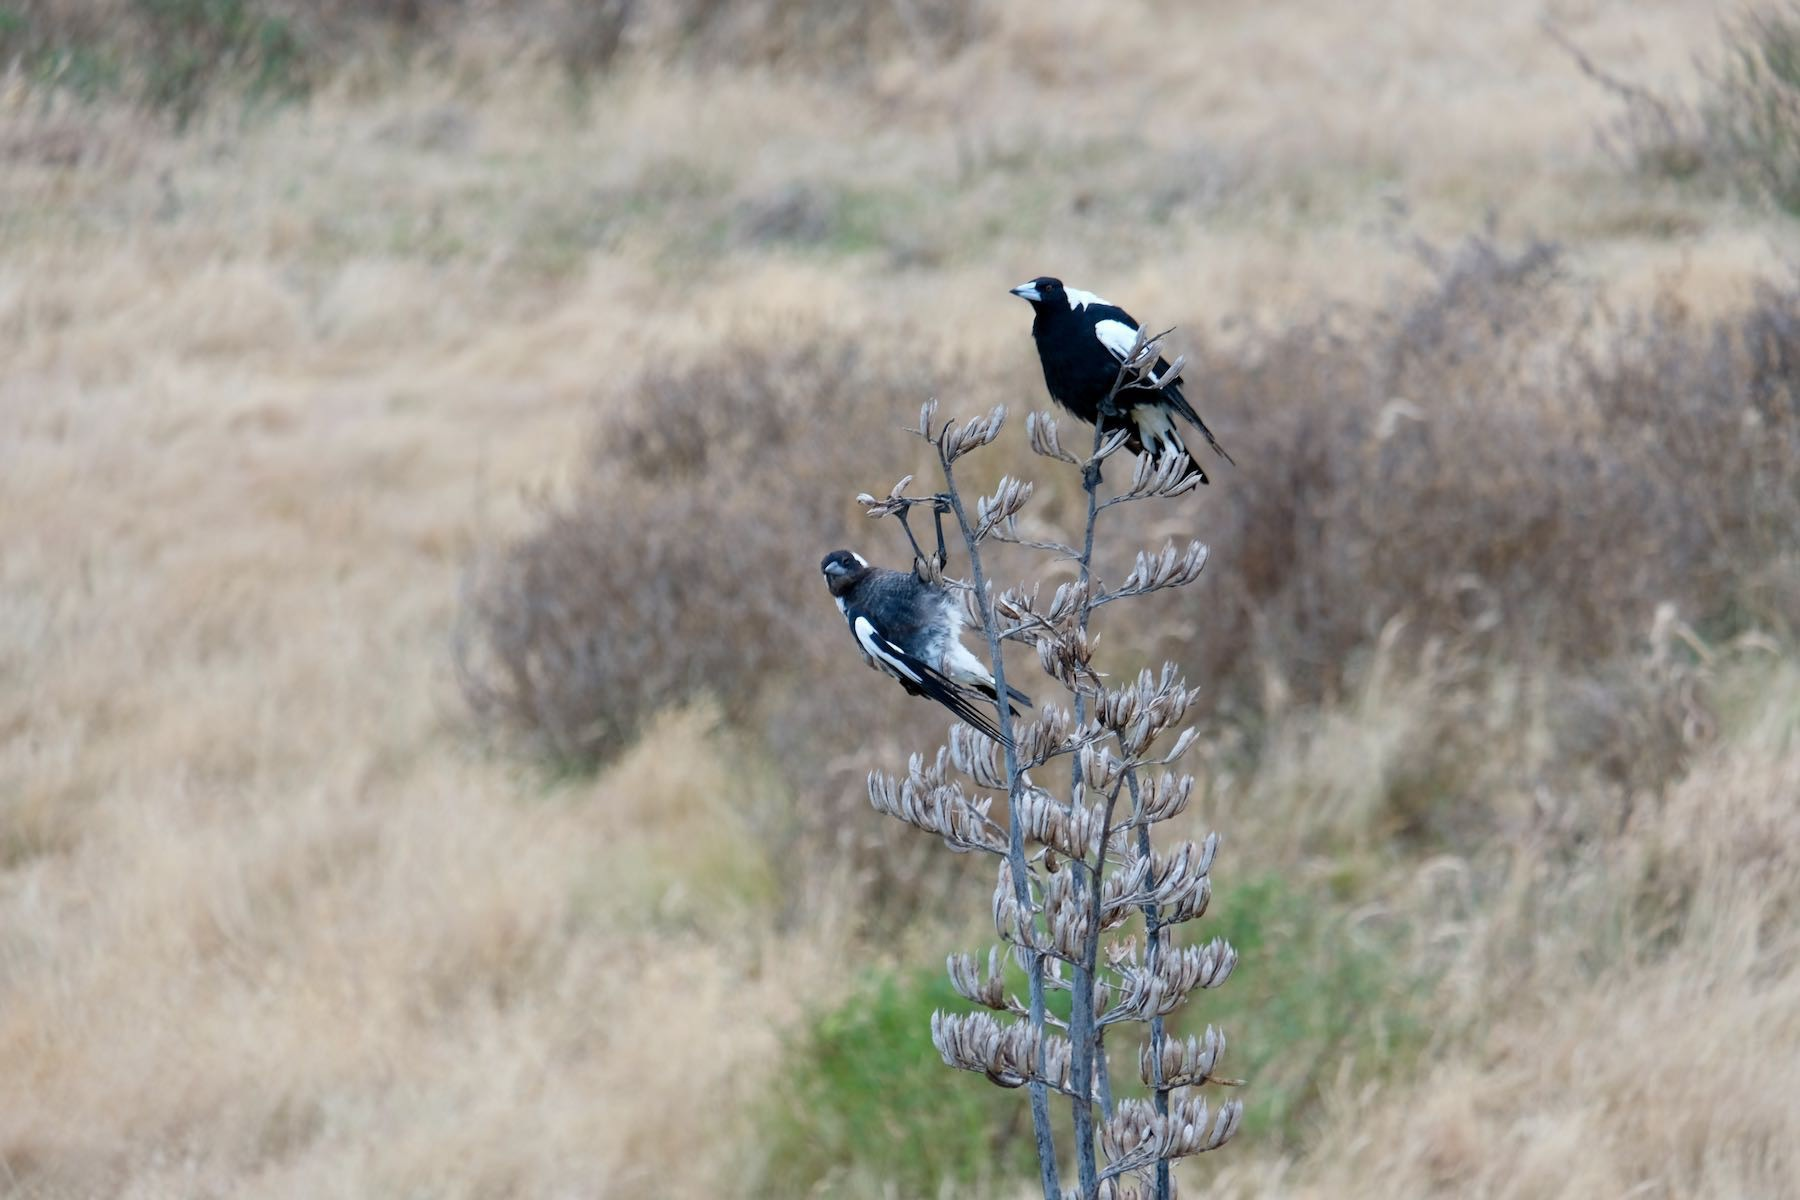 Two magpies on flax spears, one upside down.